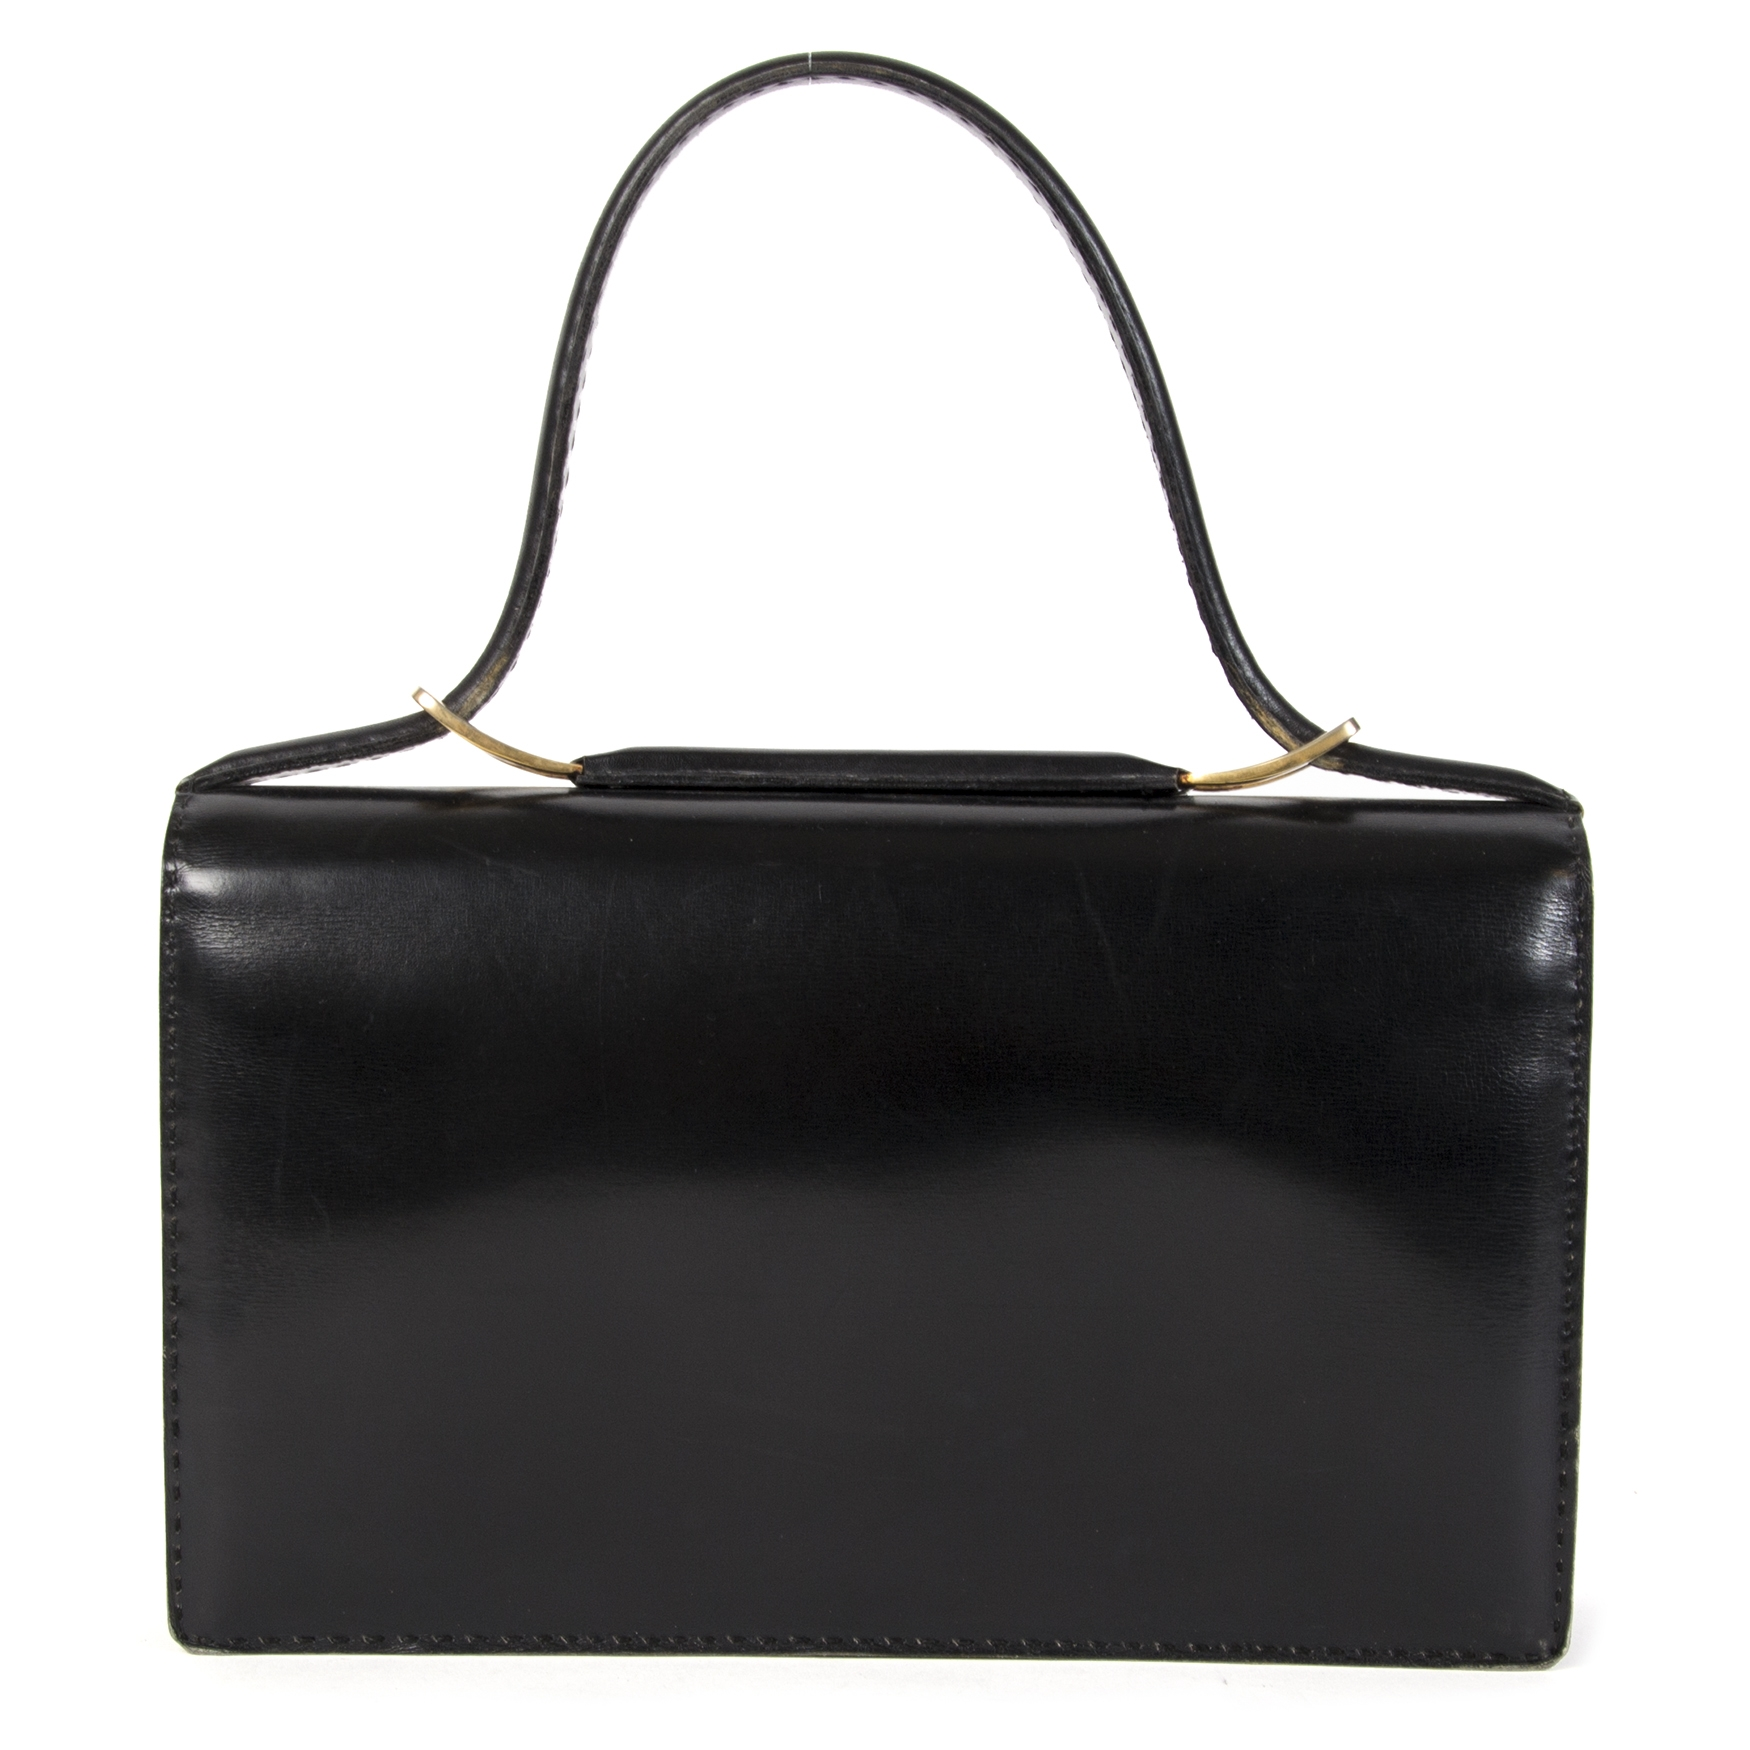 Buy and sell your authentic Delvaux Black Leather Top Handle Bag for the best price